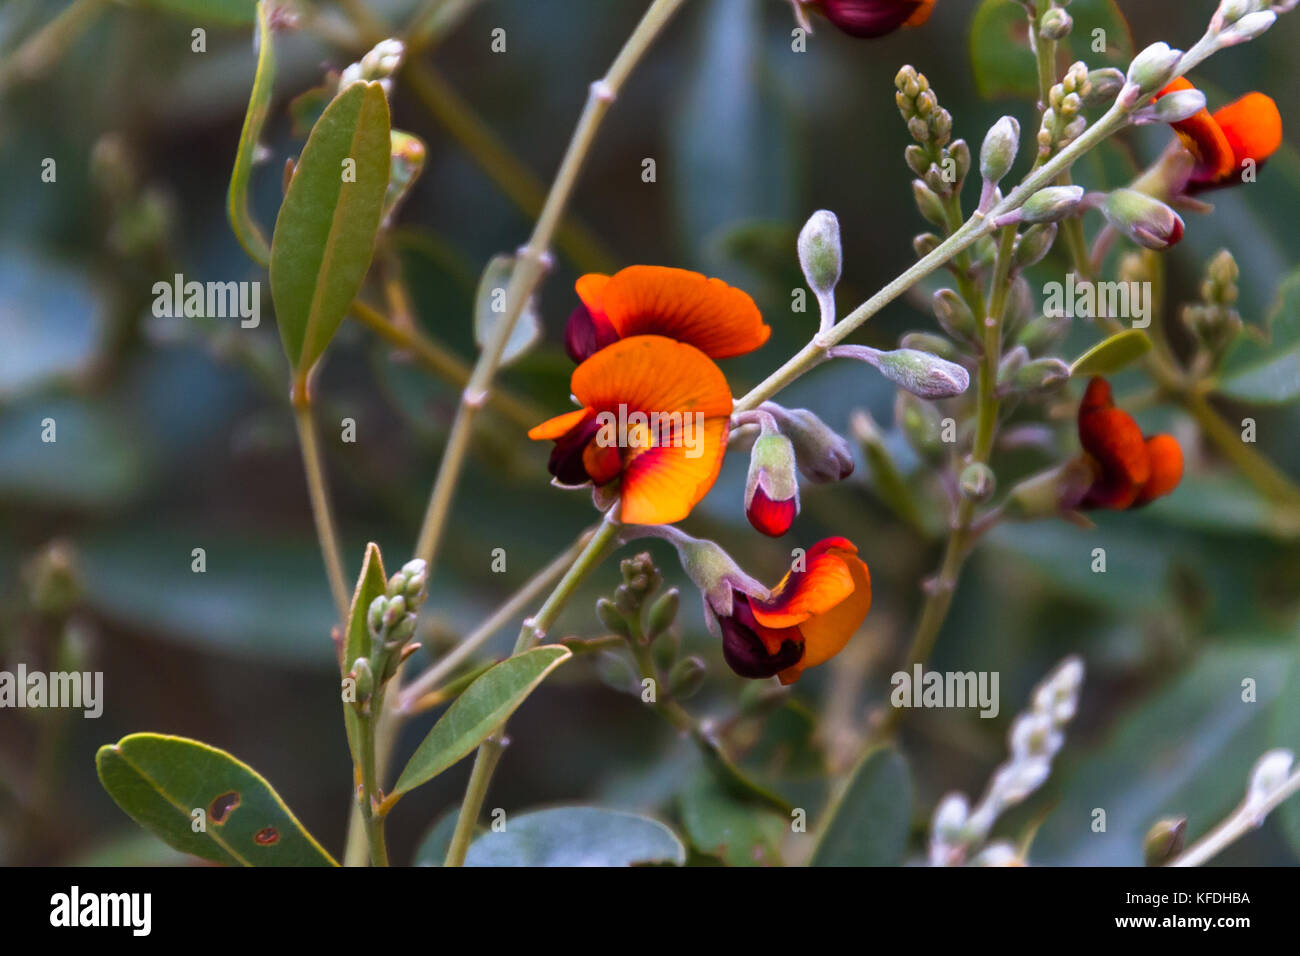 Flowering Chorizema sp., West MacDonnell Ranges National Park, Northern Territory, Australia - Stock Image